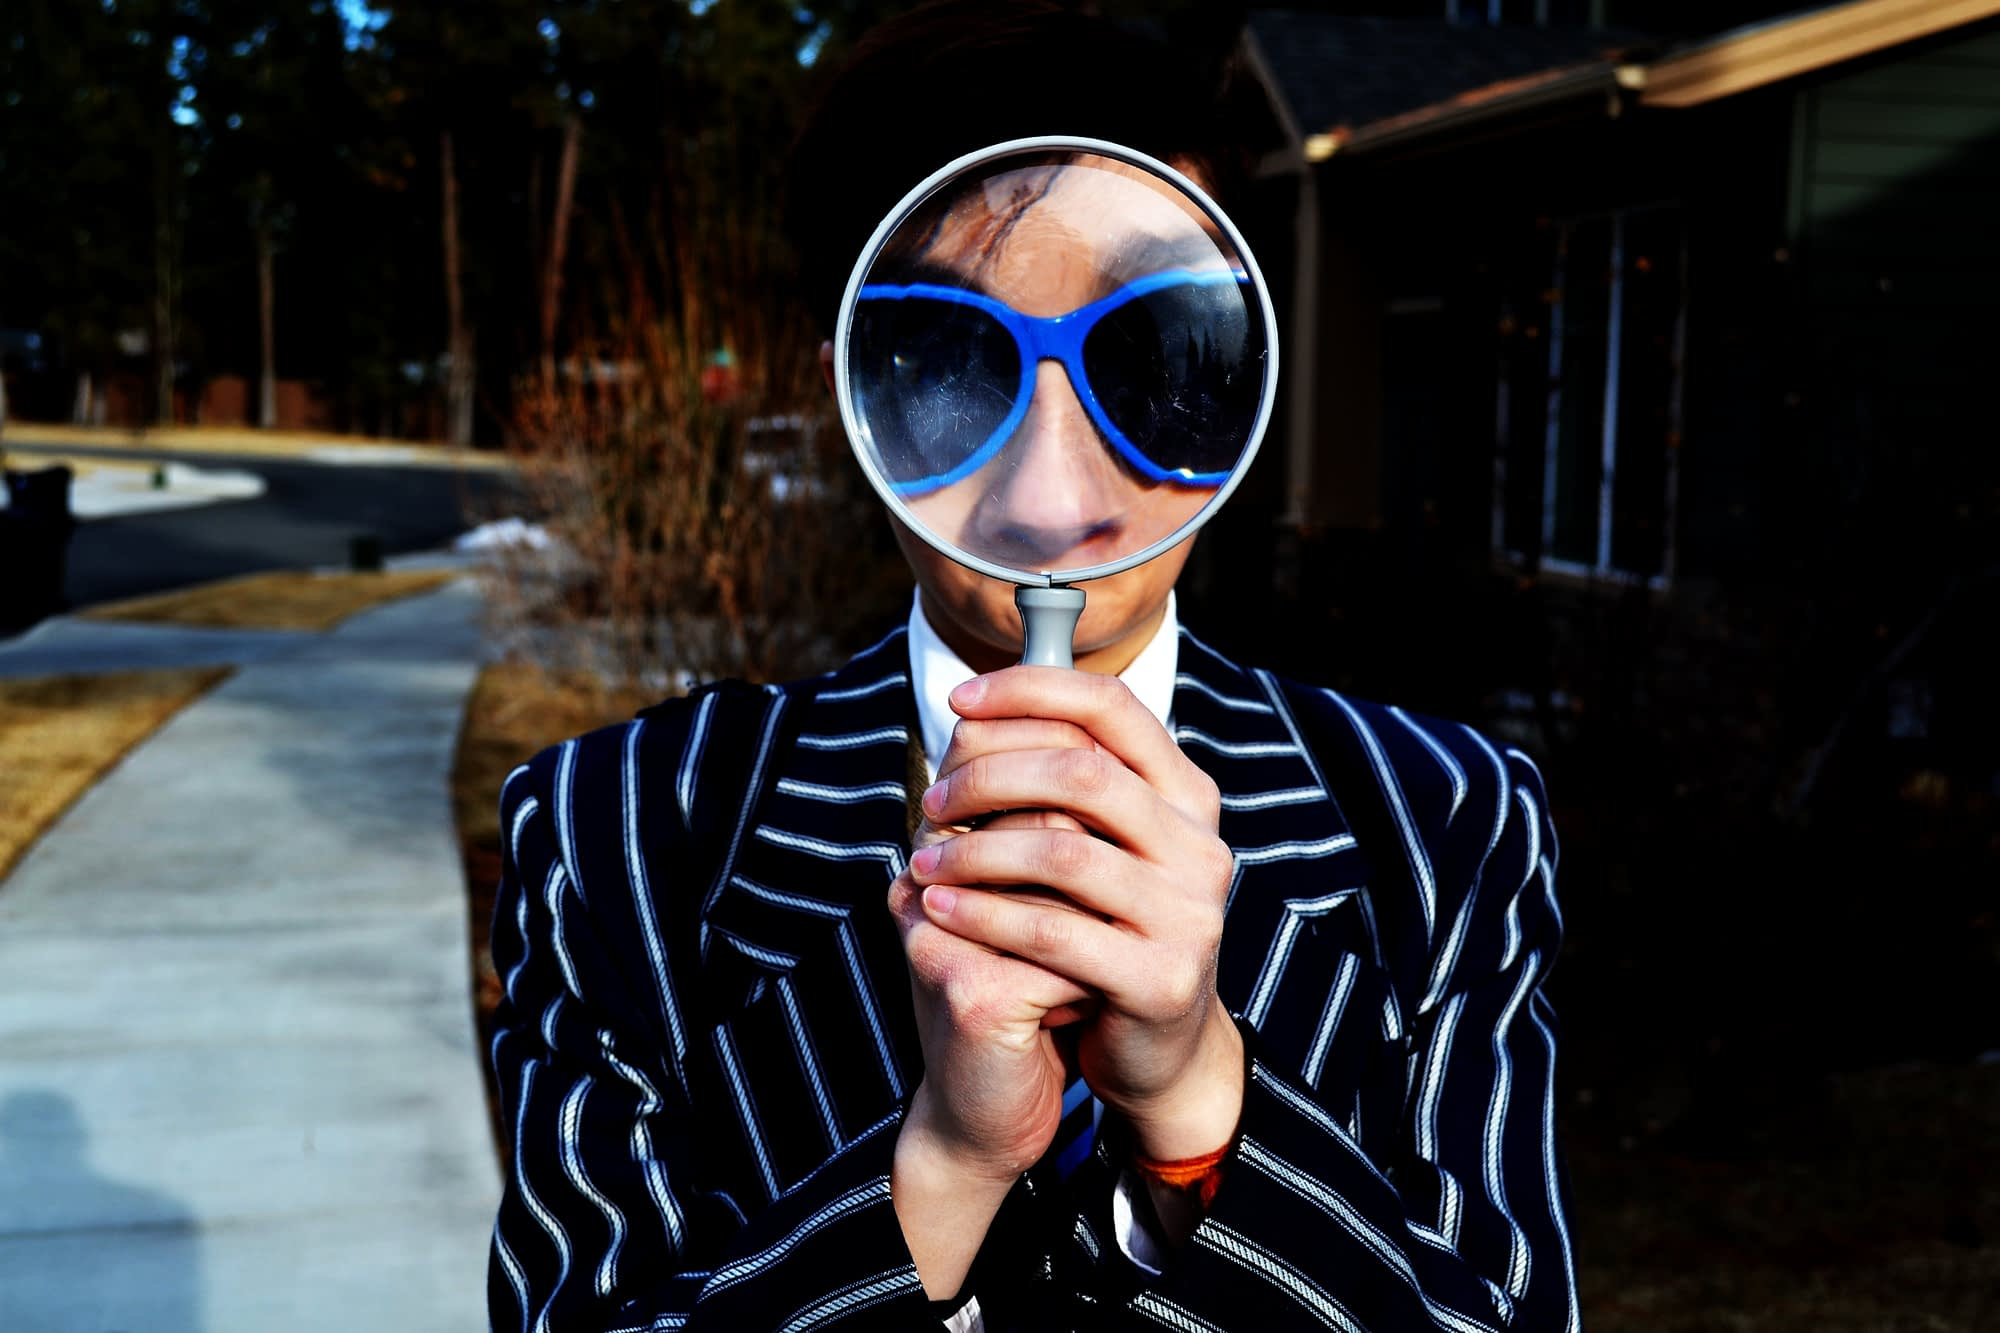 person with magnifying glass - photo by mar newhall